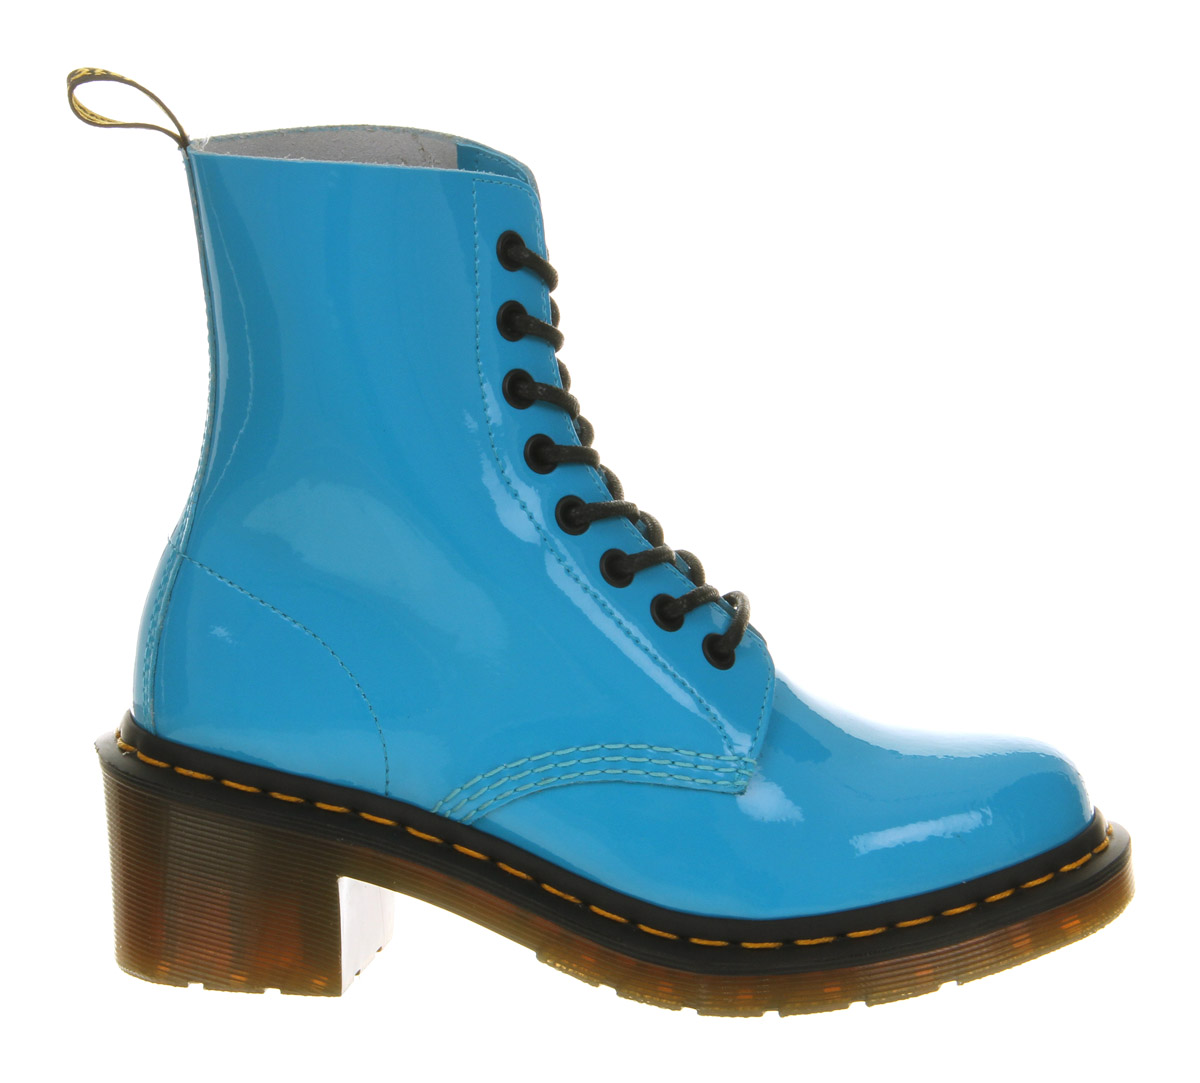 Dr Martens 8 Eyelet Heel Boot Sunny Blue Leather Lyst